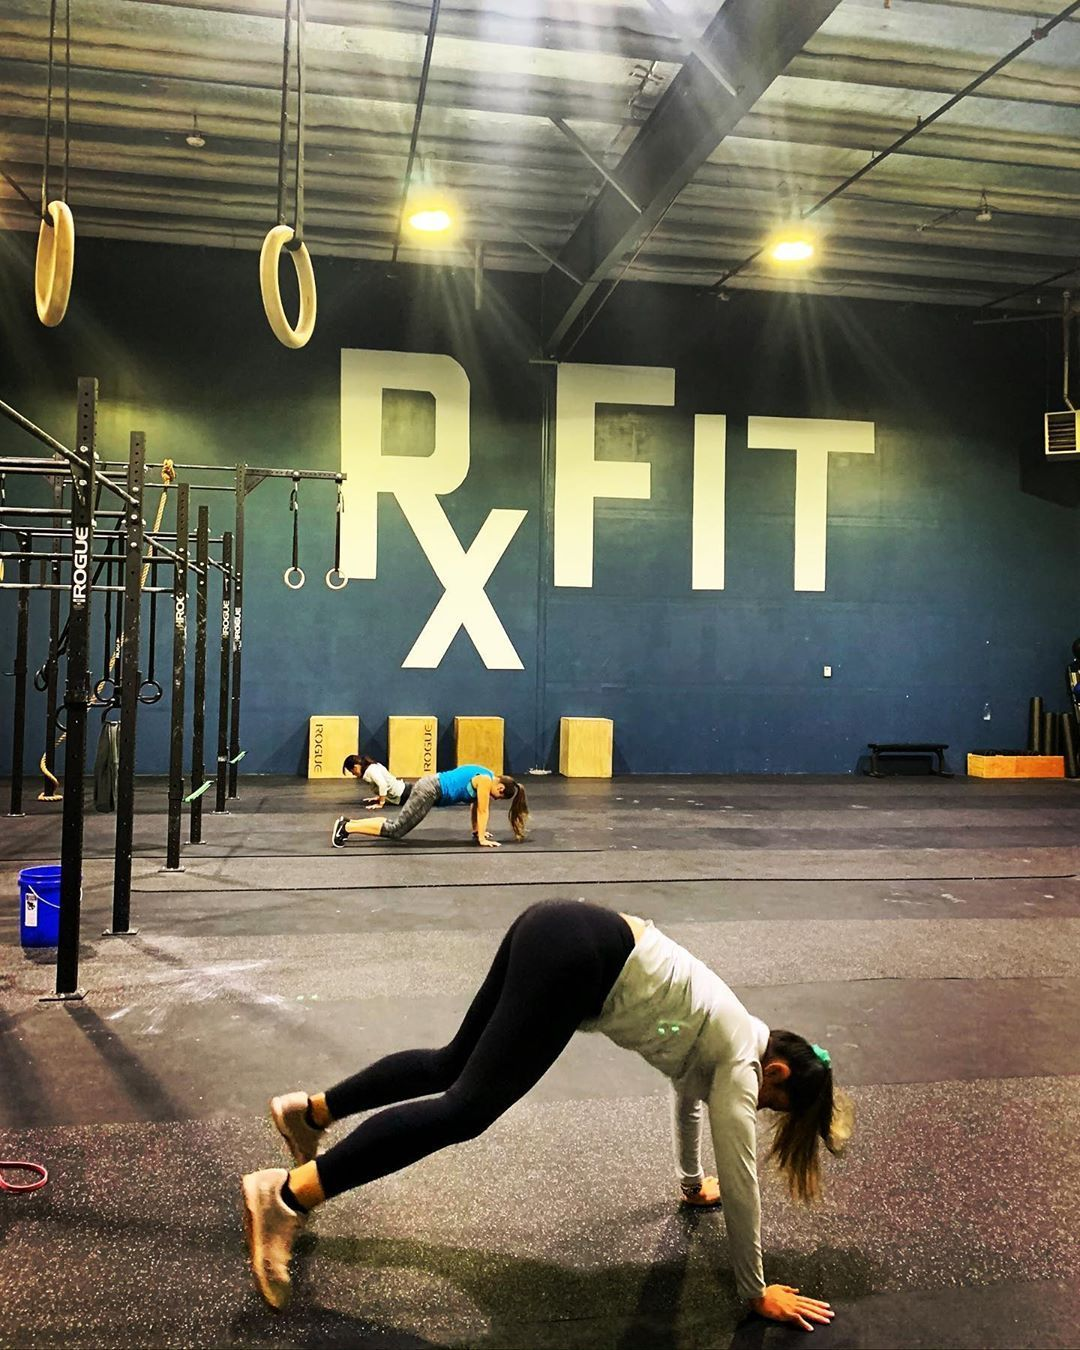 #fitnessprescribed #fitnessjourney #weightlifting #comingburpees #crossfitopen #intheopen #crossfit...